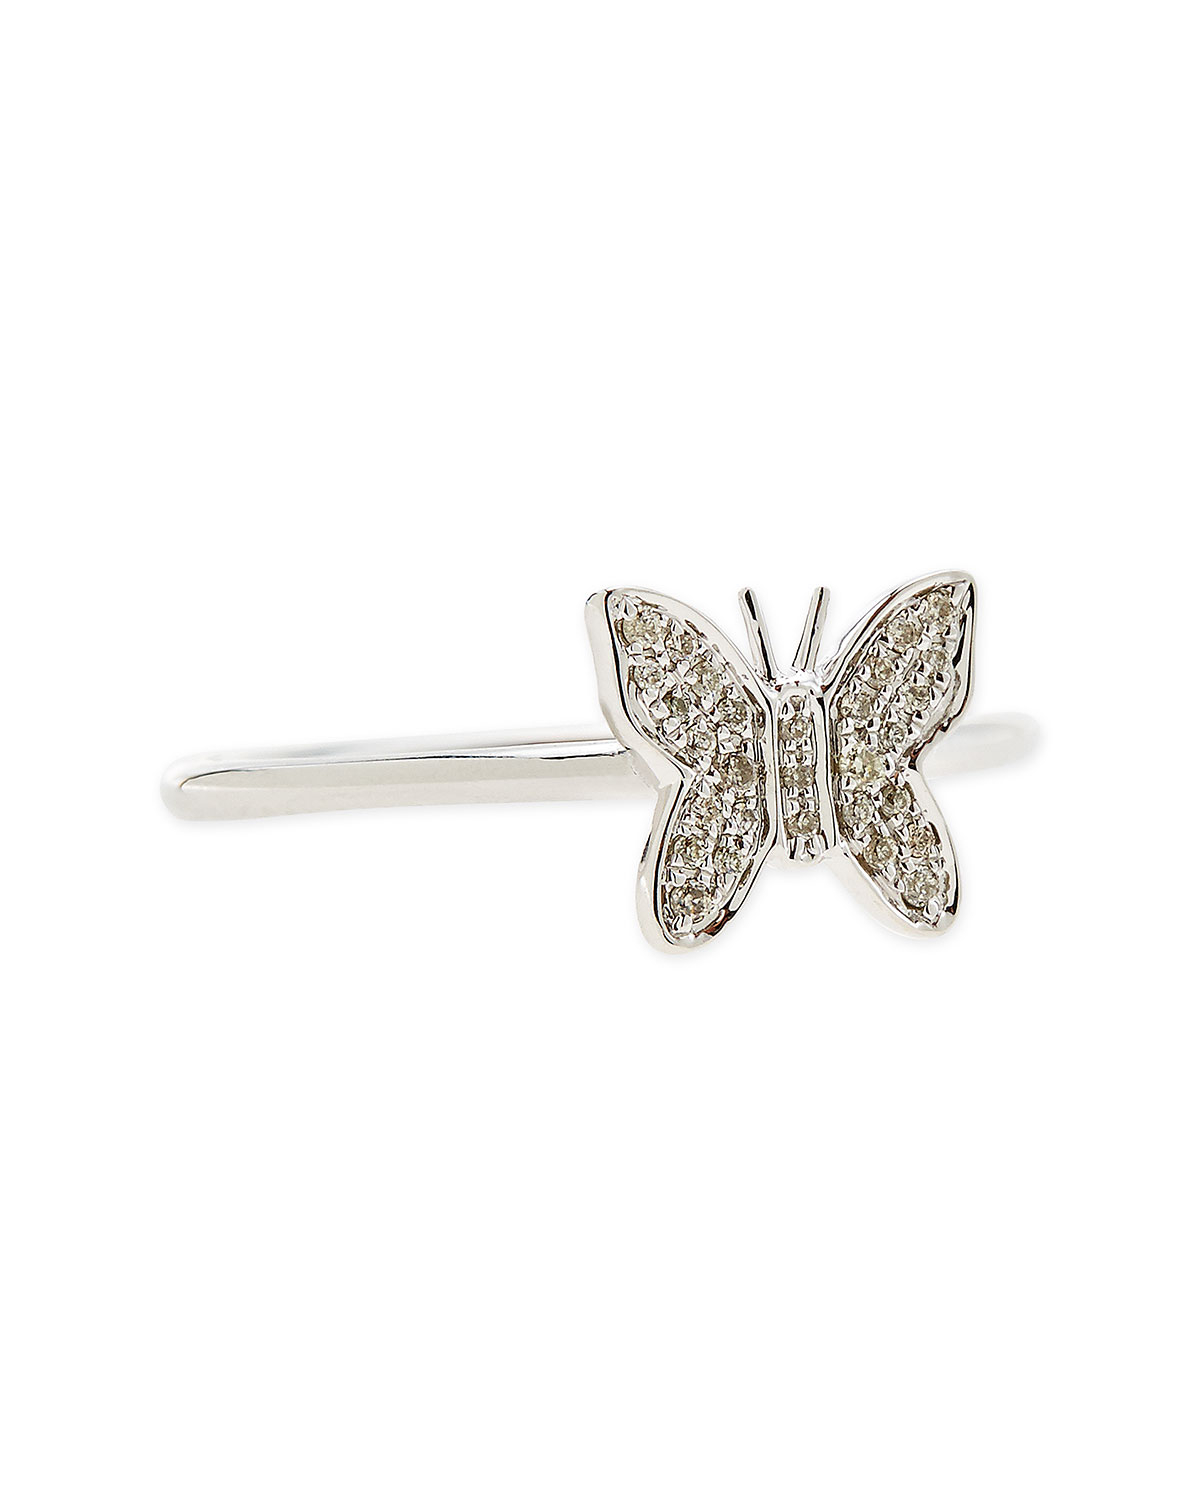 sydney evan 14 karat white gold butterfly ring with pave